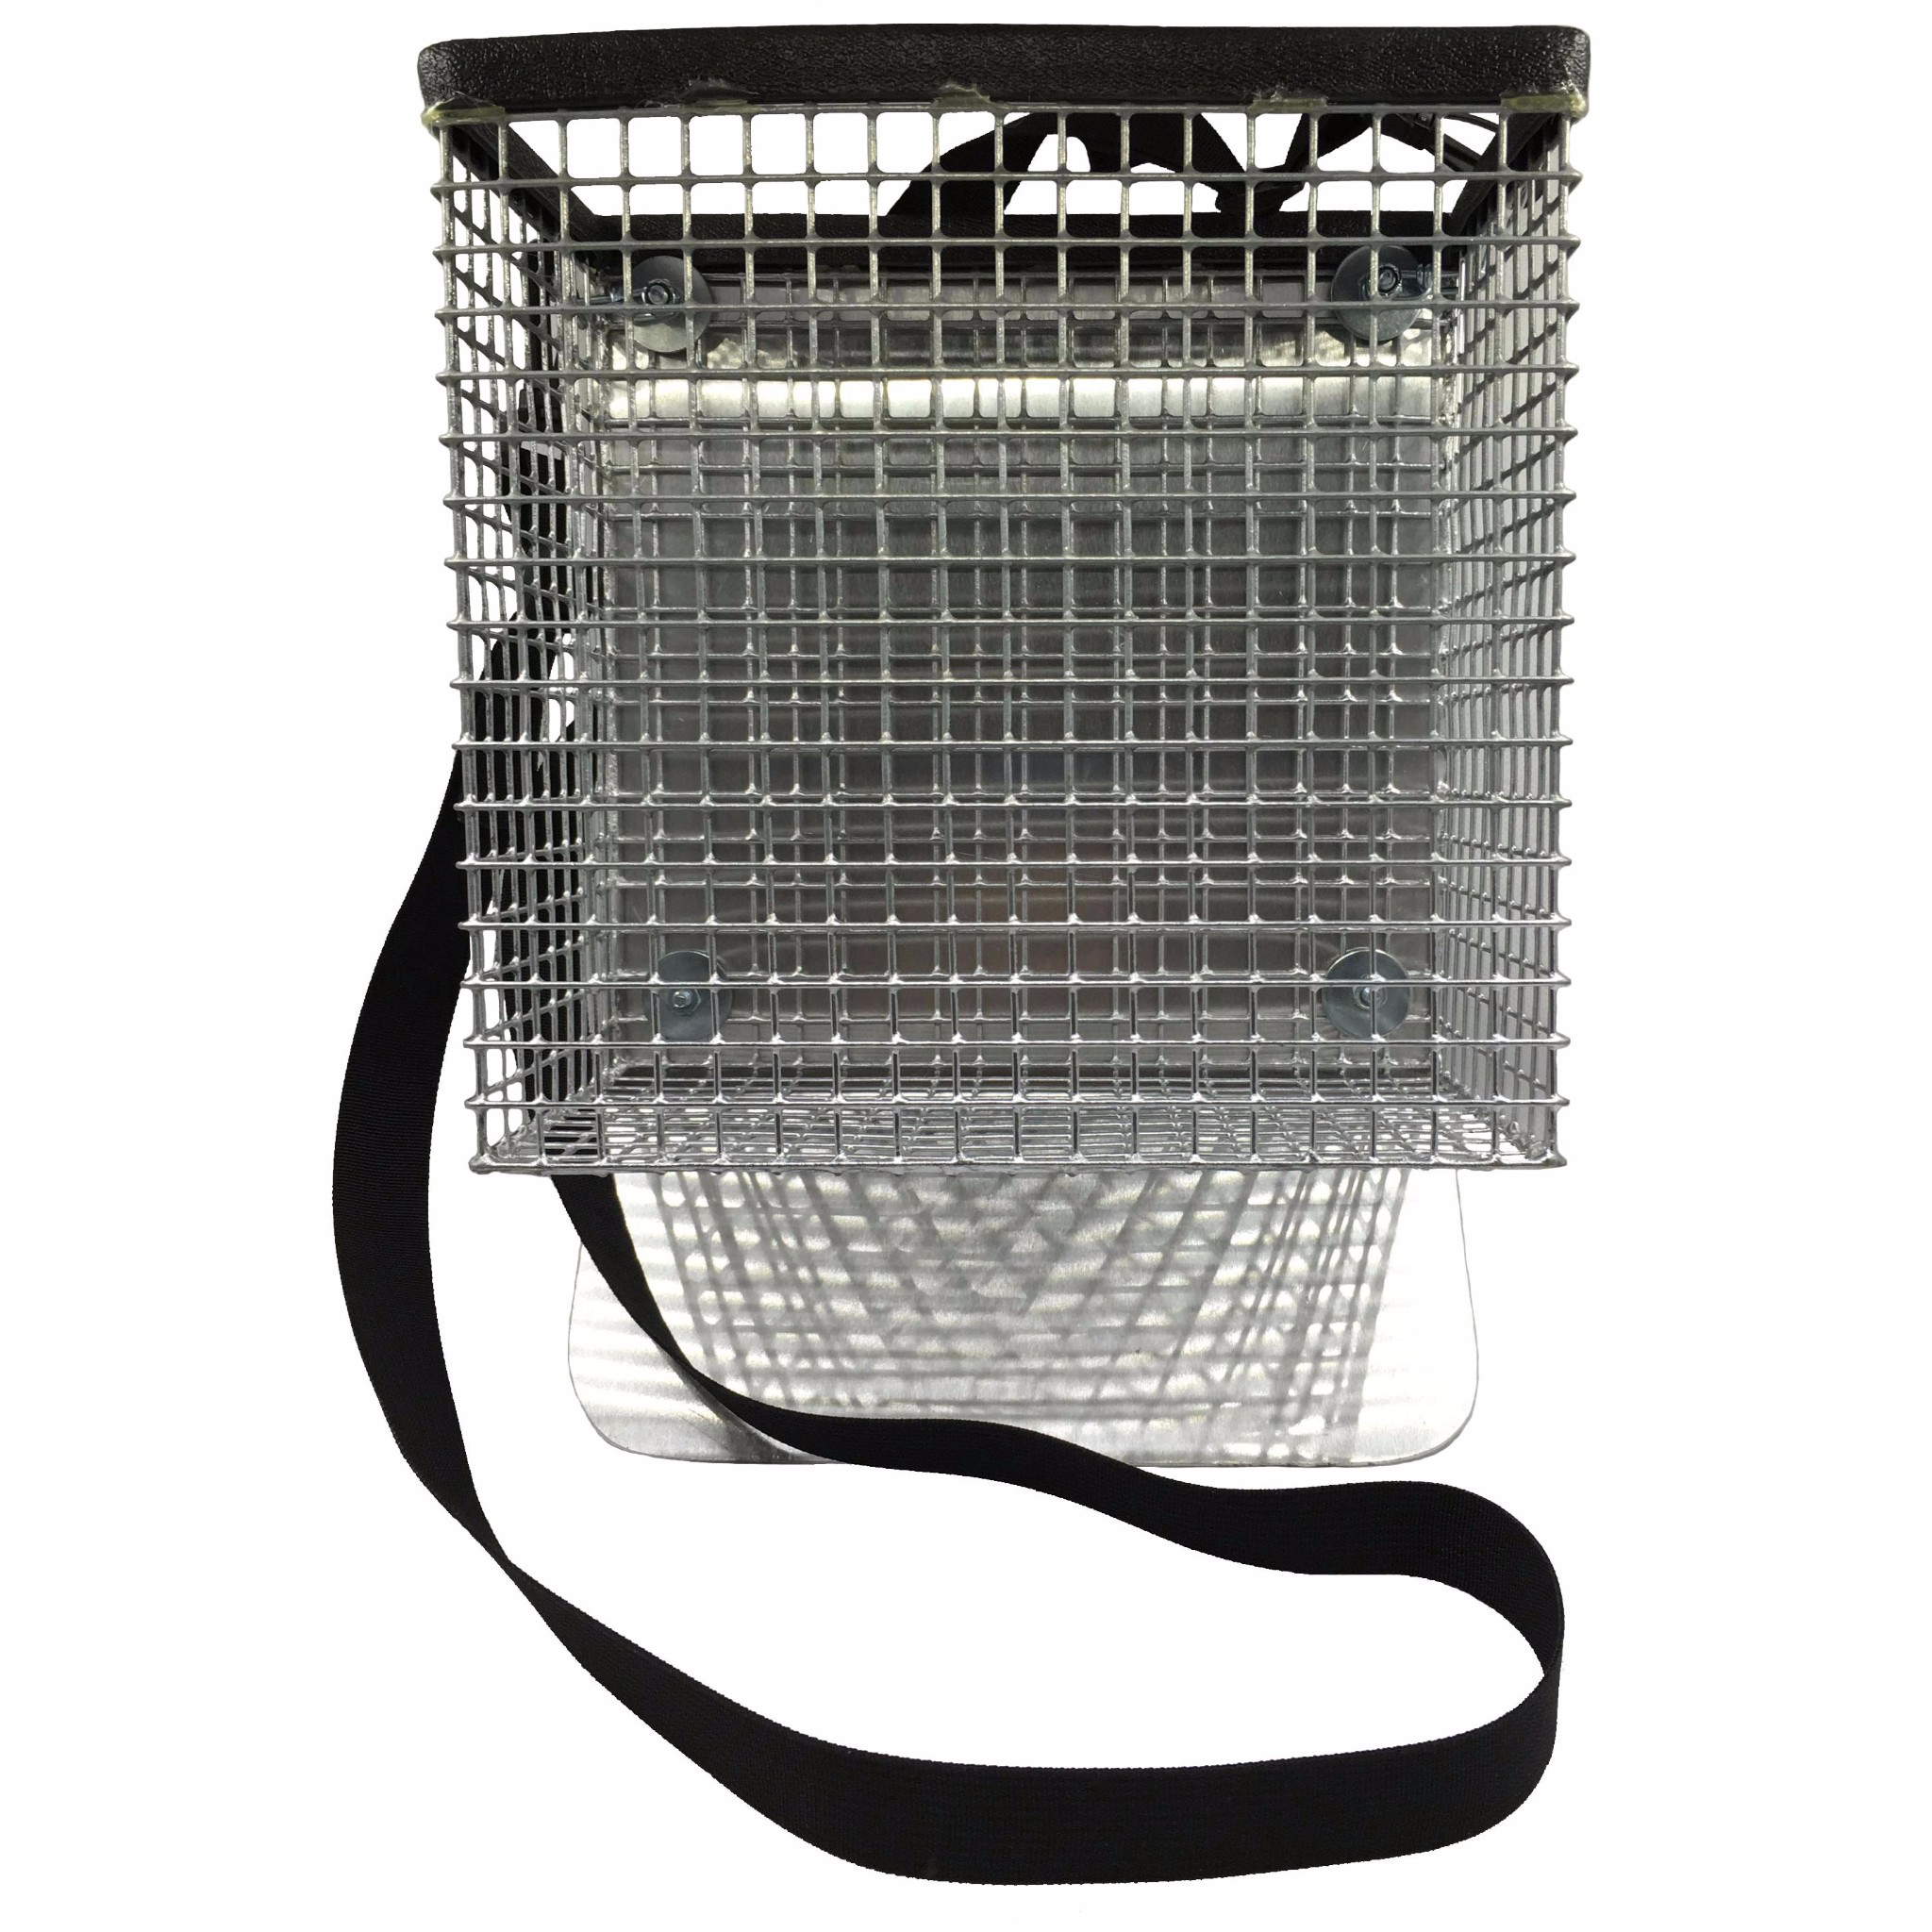 RTG 1/2 inch Screen Square Side Beach Basket Dry Sand Bel...